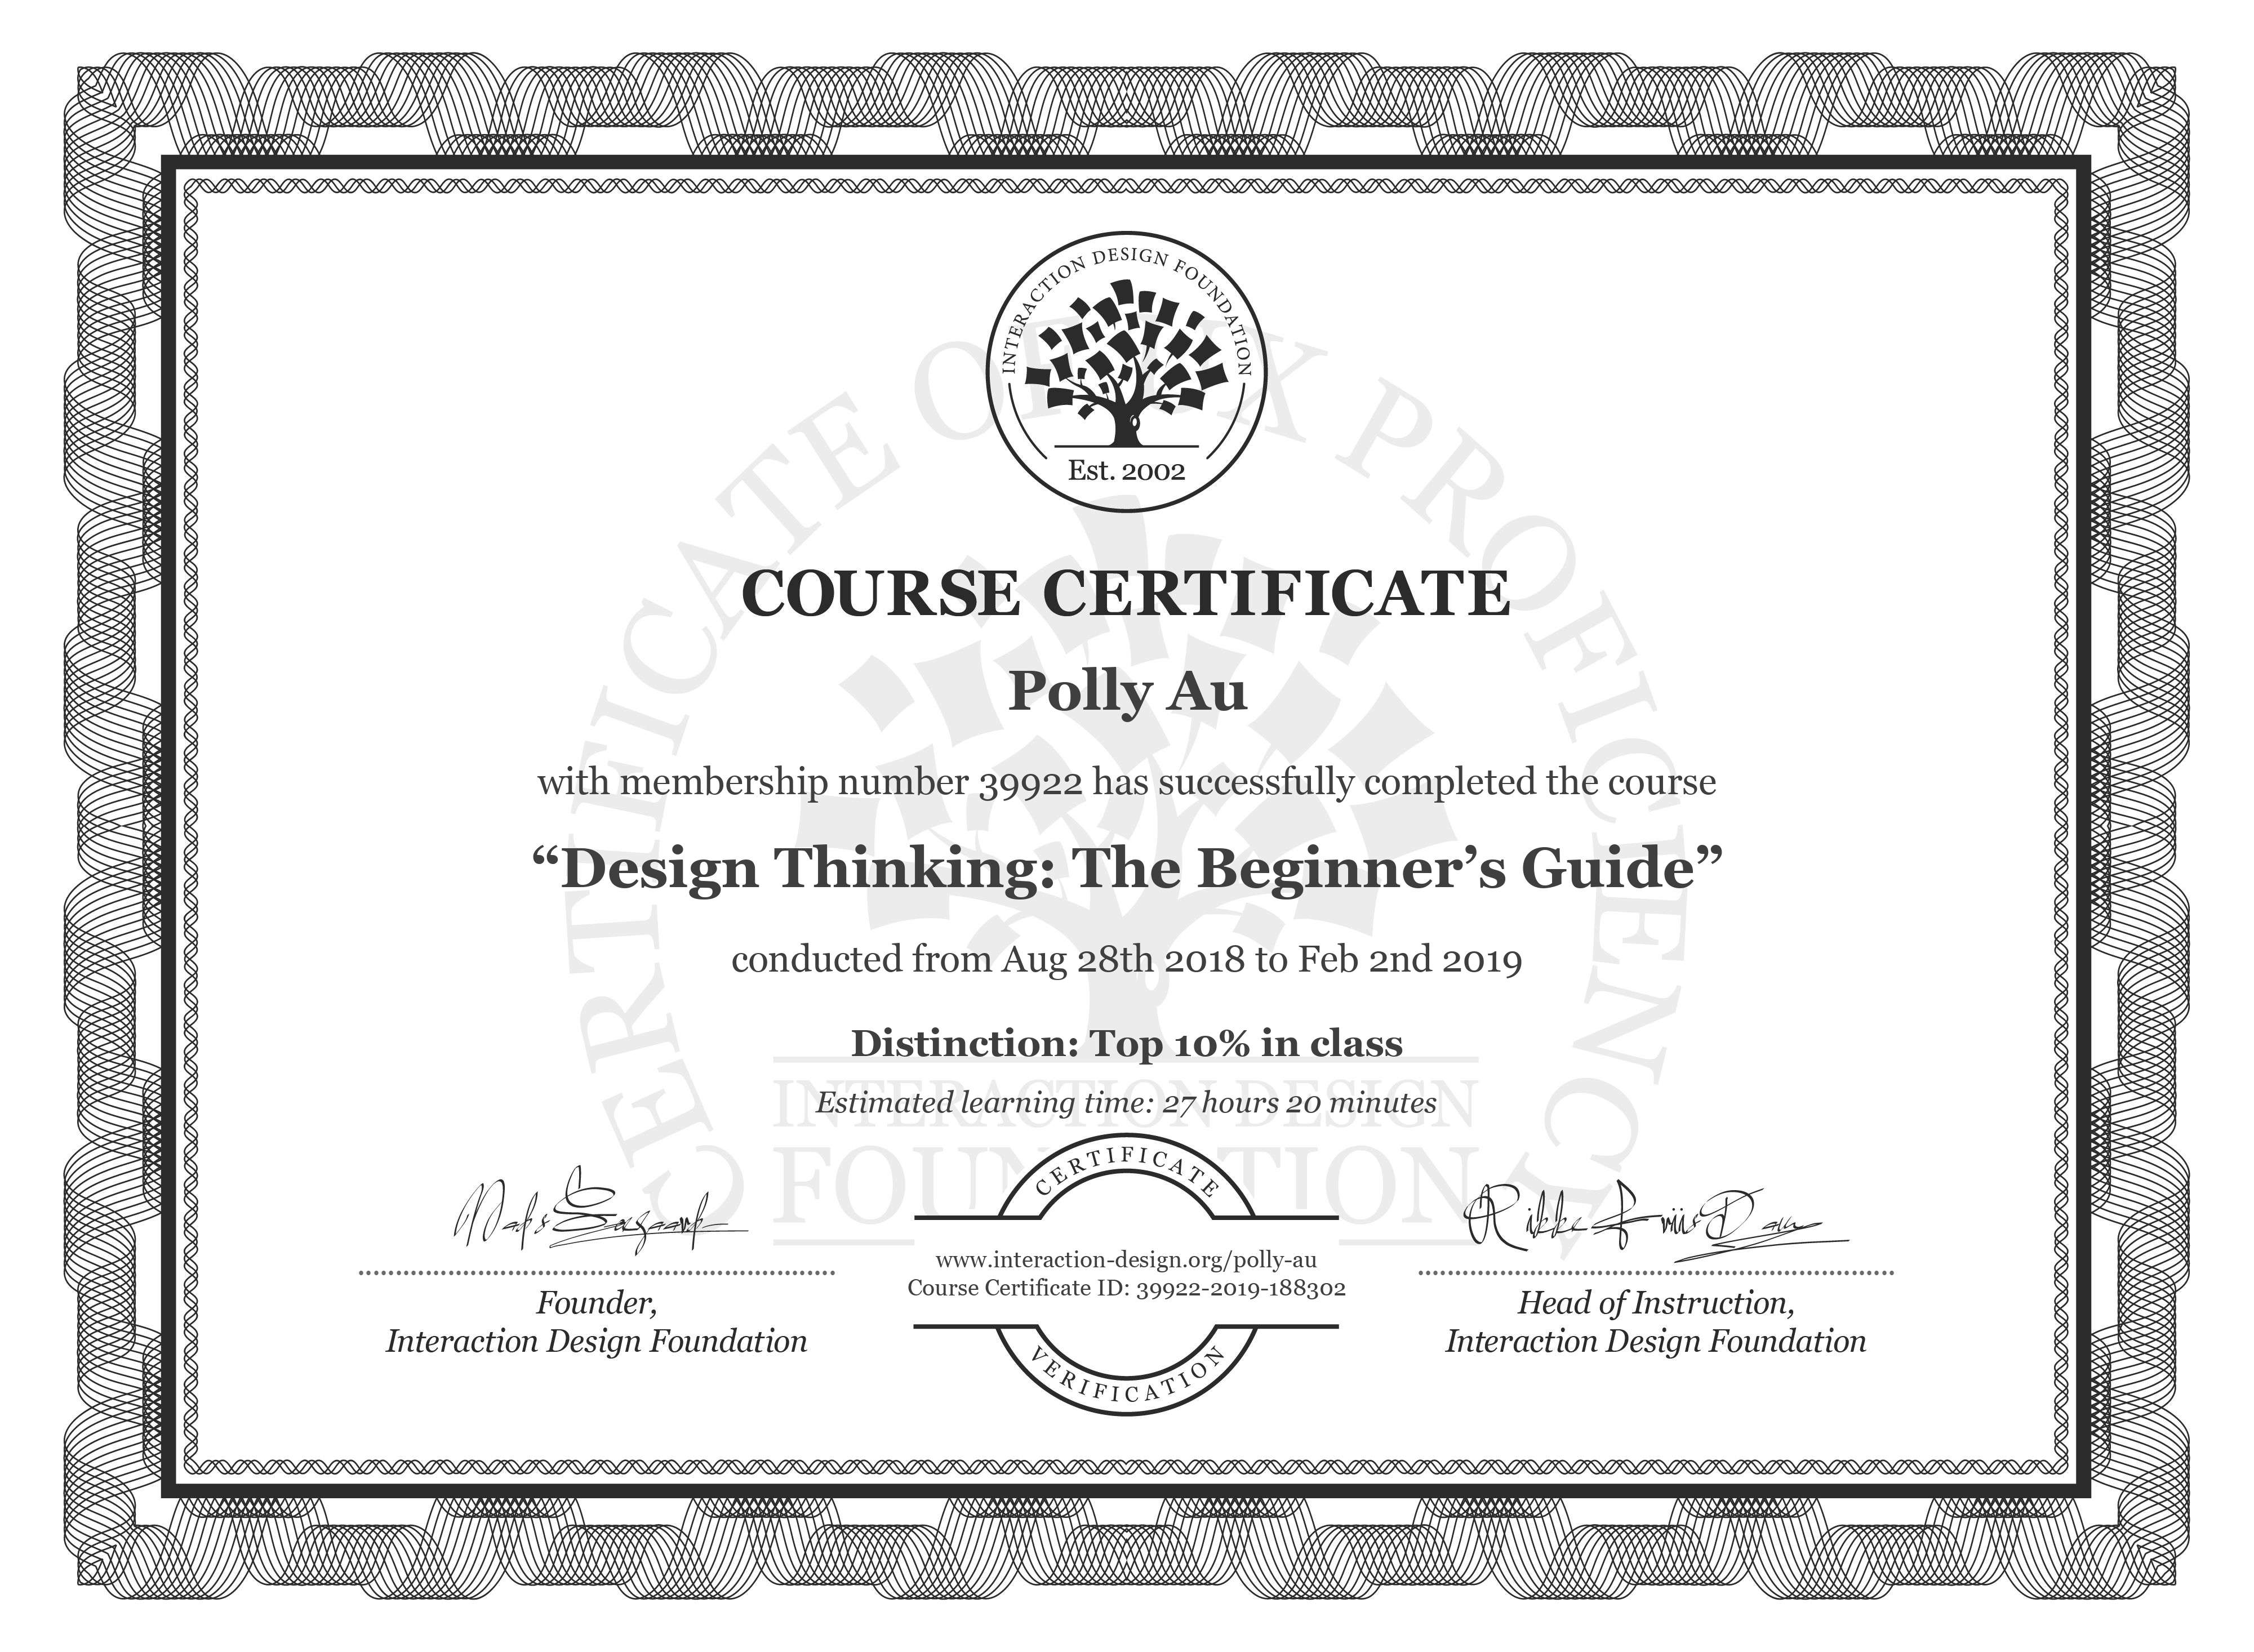 Polly Au: Course Certificate - Design Thinking: The Beginner's Guide